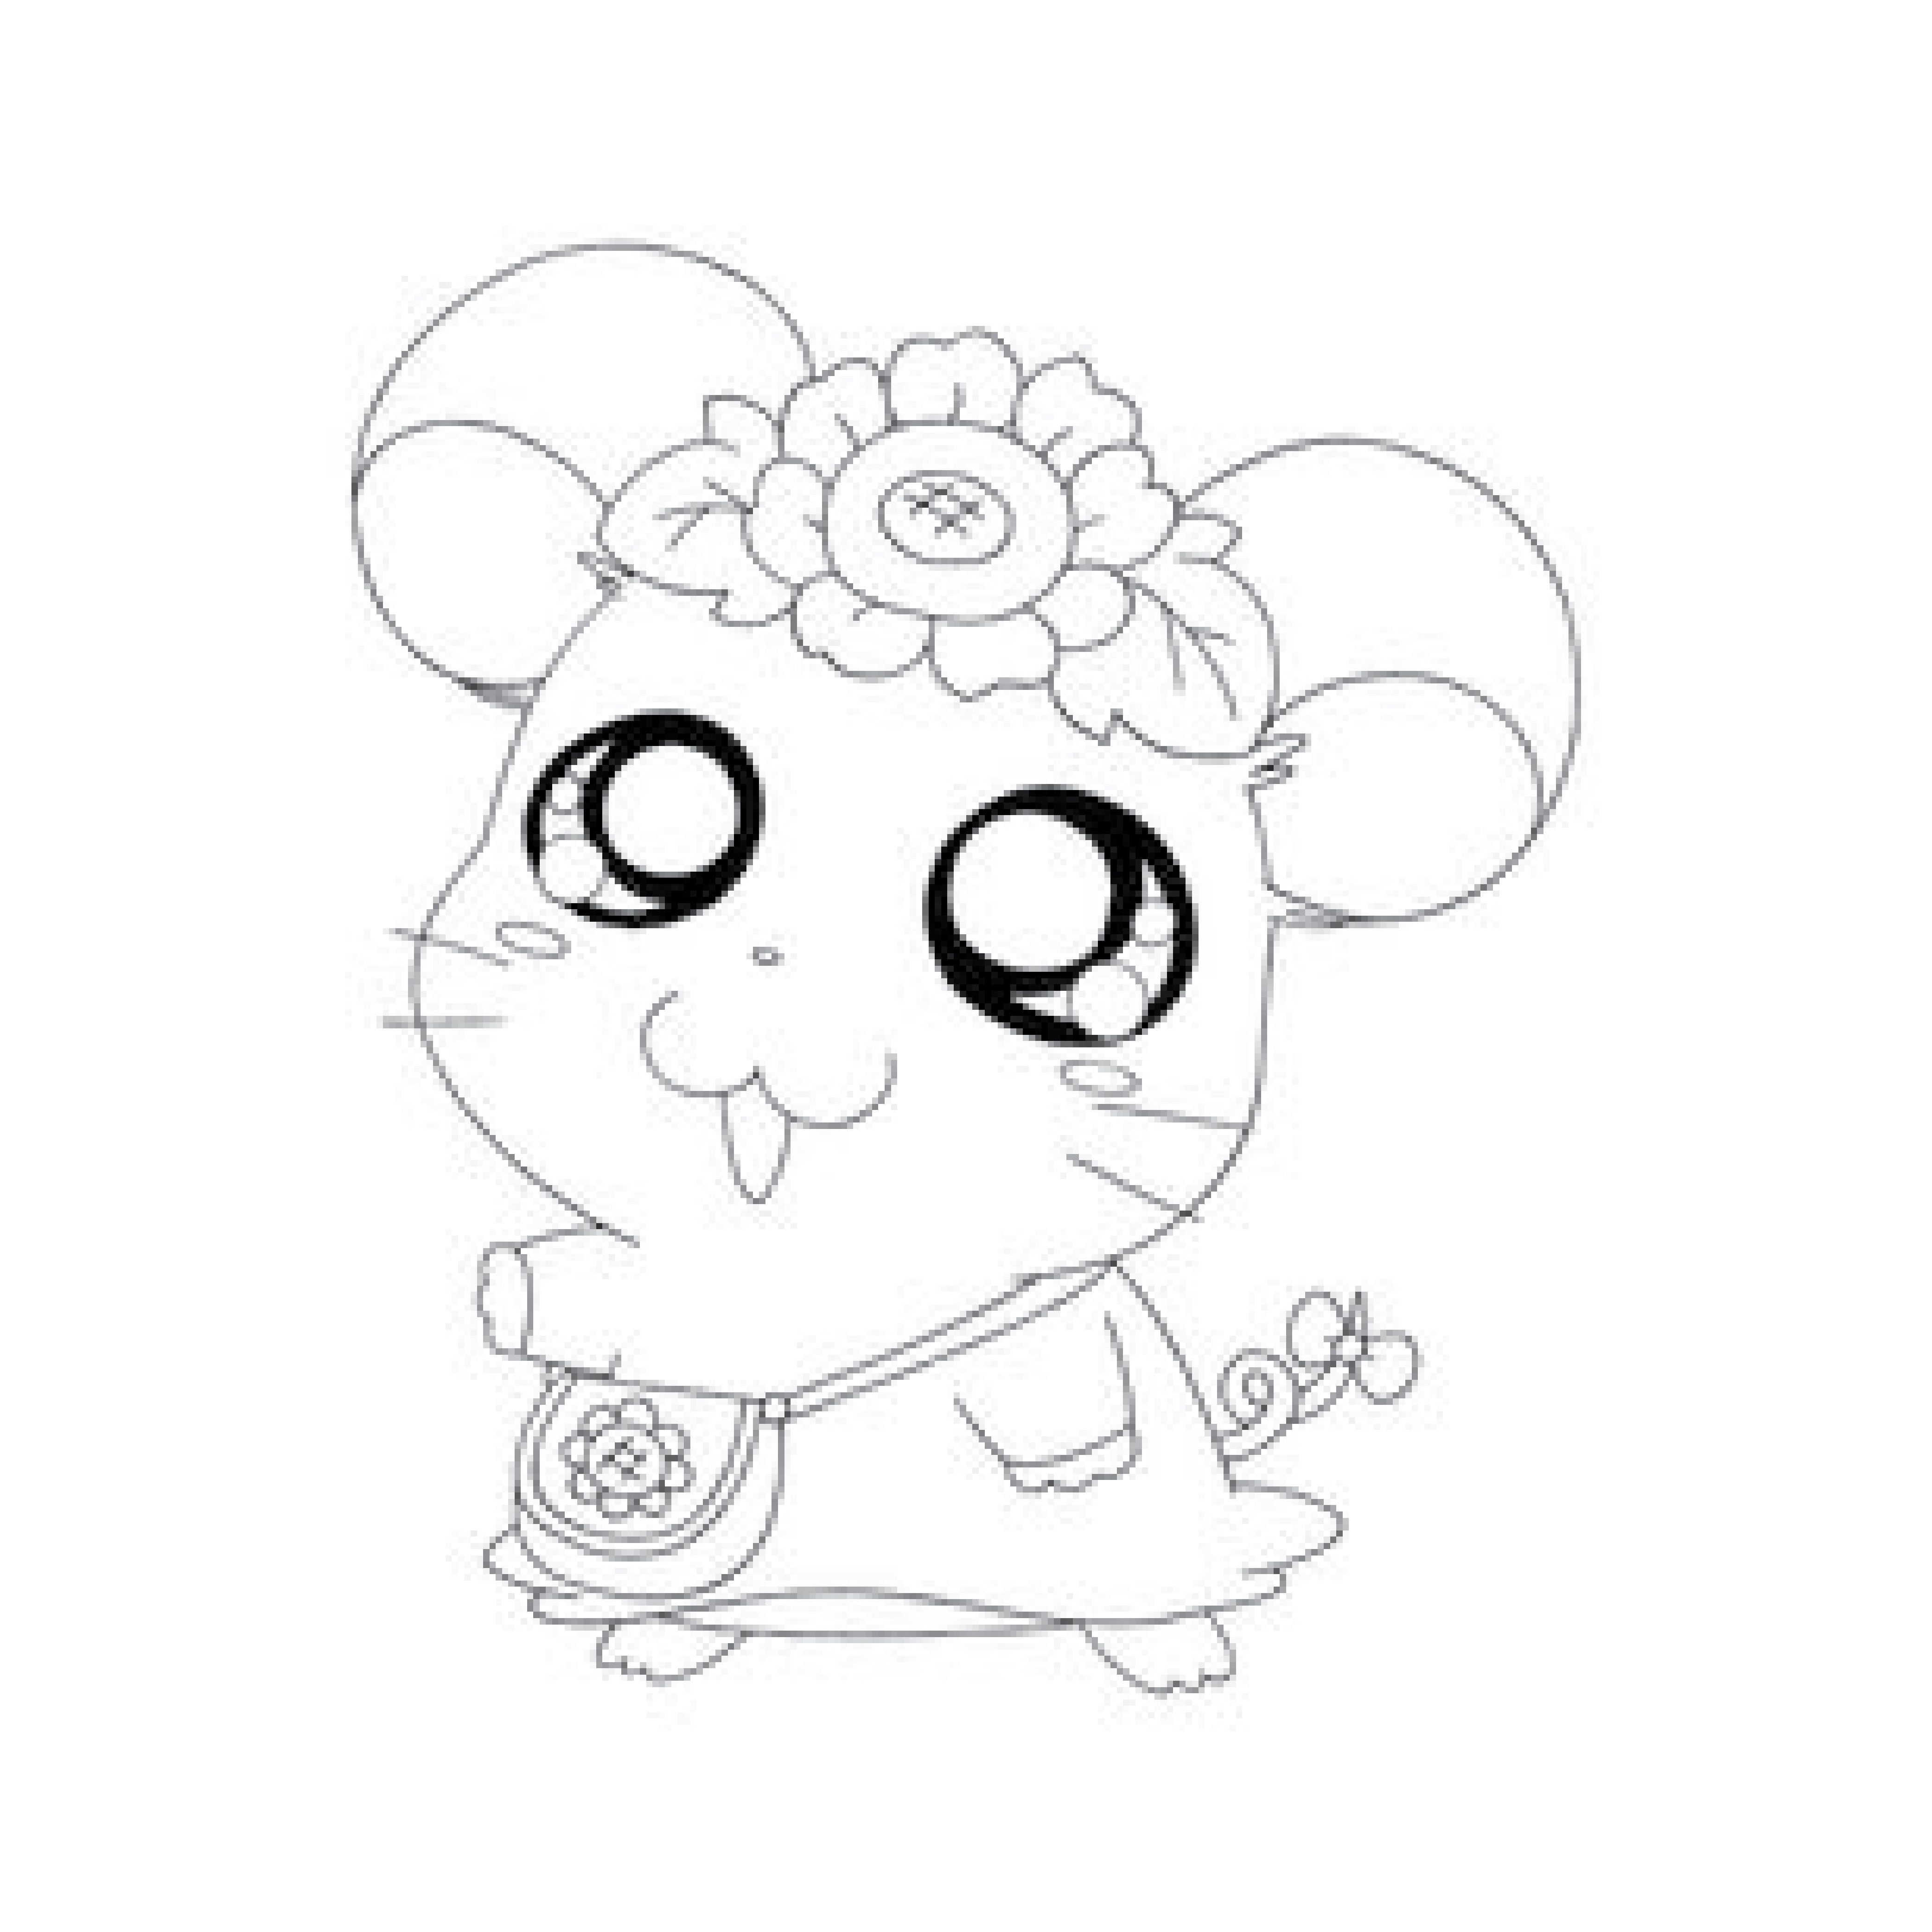 Coloring Book Pages In 2021 Coloring Books Cartoon Coloring Pages Animal Coloring Pages